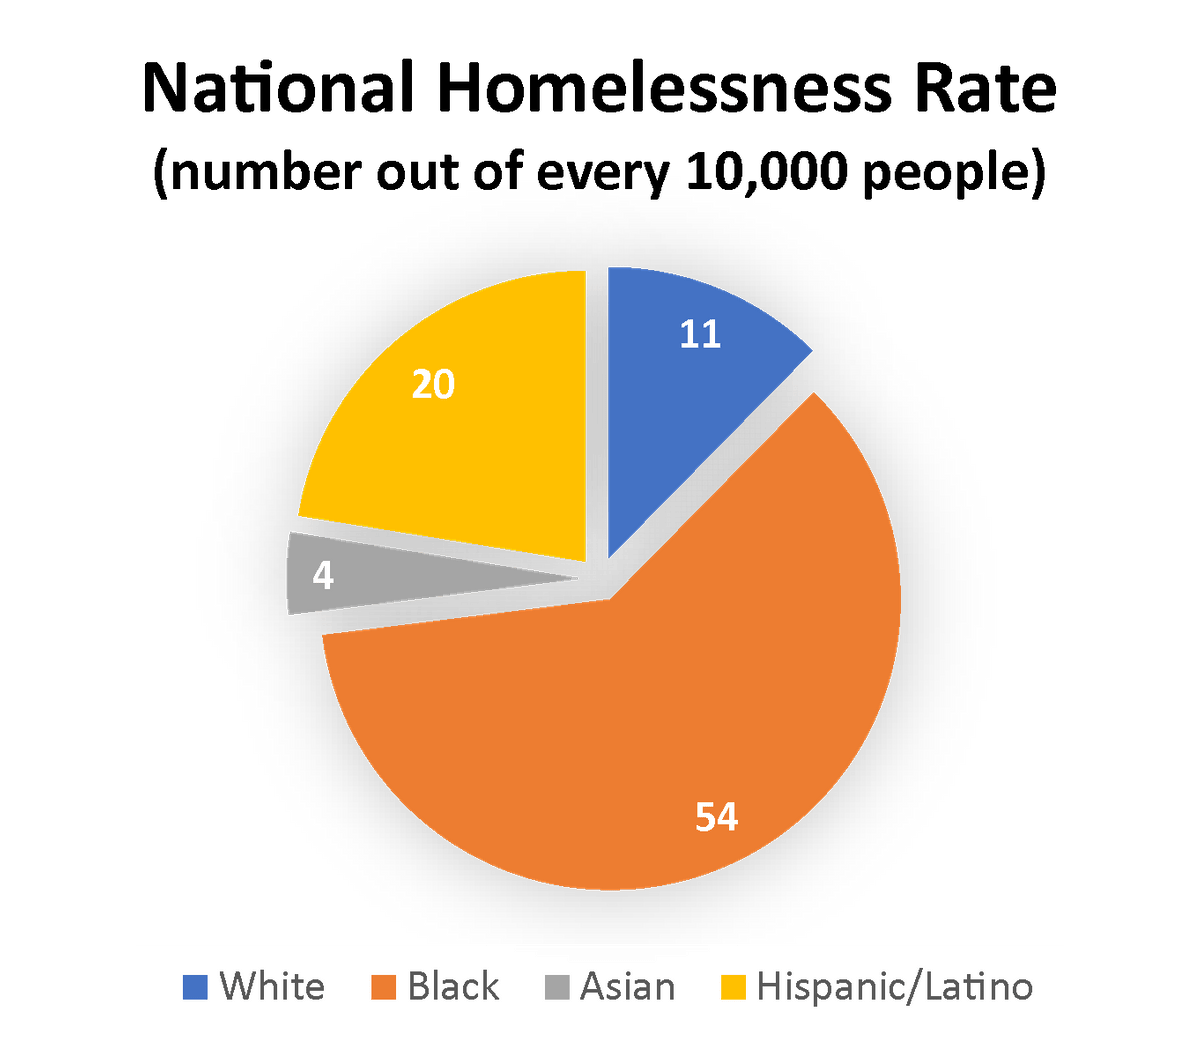 Data from: Demographic Data Project: Race, Ethnicity, and Homelessness - National Alliance to End Homelessness